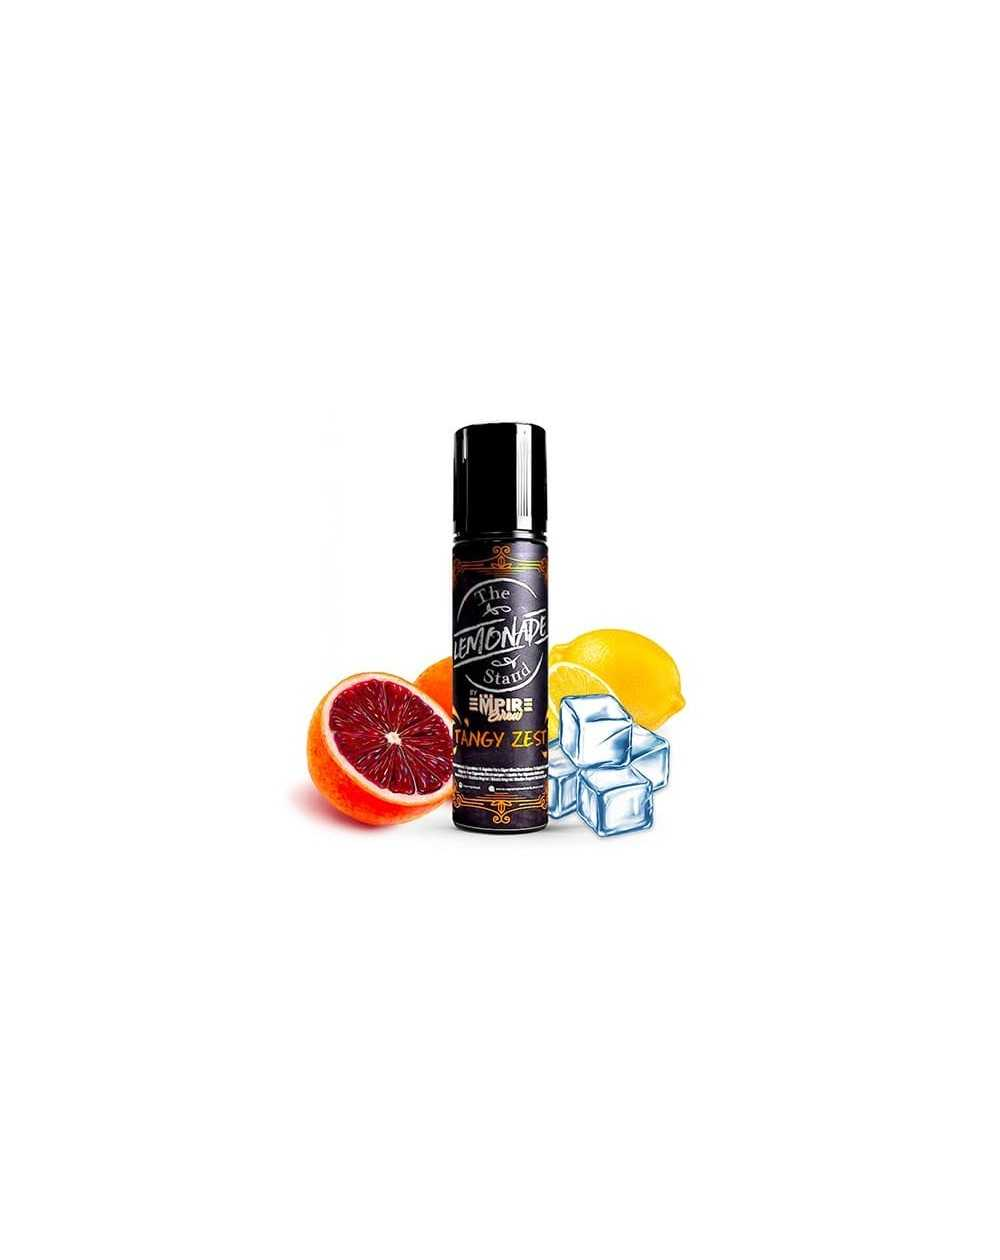 Tangy Zest 50ml - Lemonade Stand by Empire Brew-1